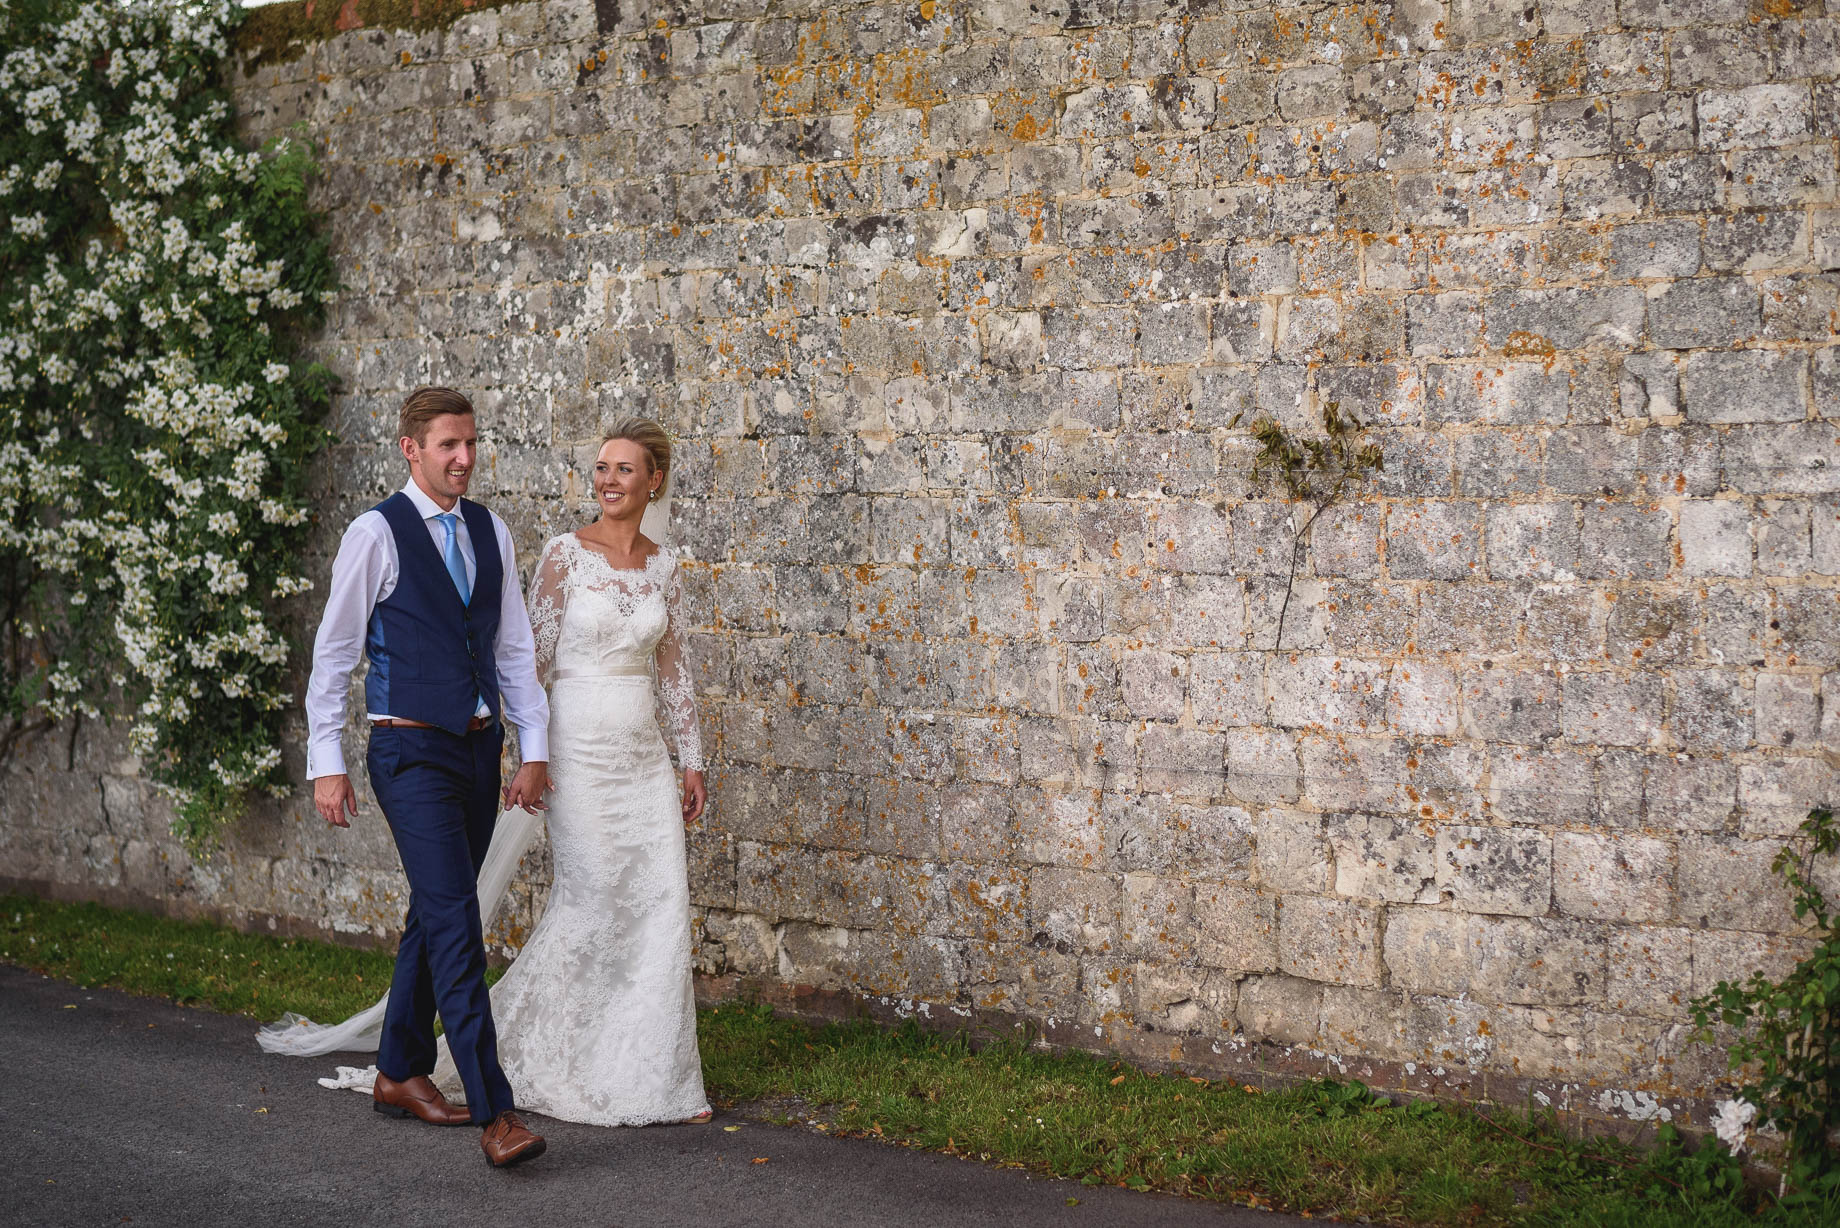 Bury Court Barn wedding photography - Rachel + Richard